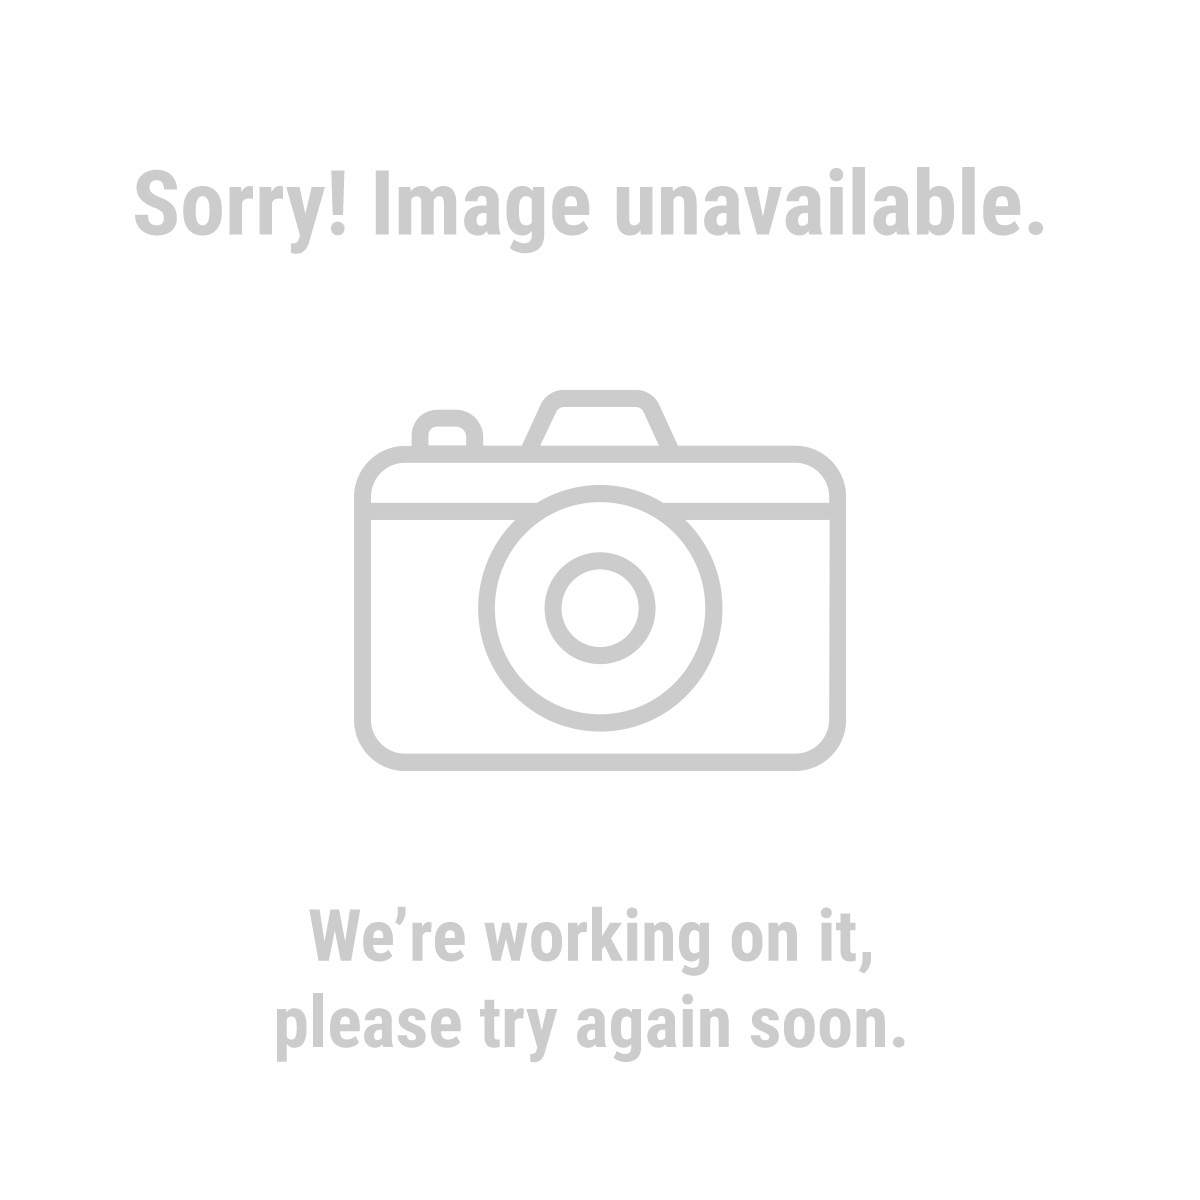 Greenwood® 92398 Six Pattern Trigger Spray Nozzle